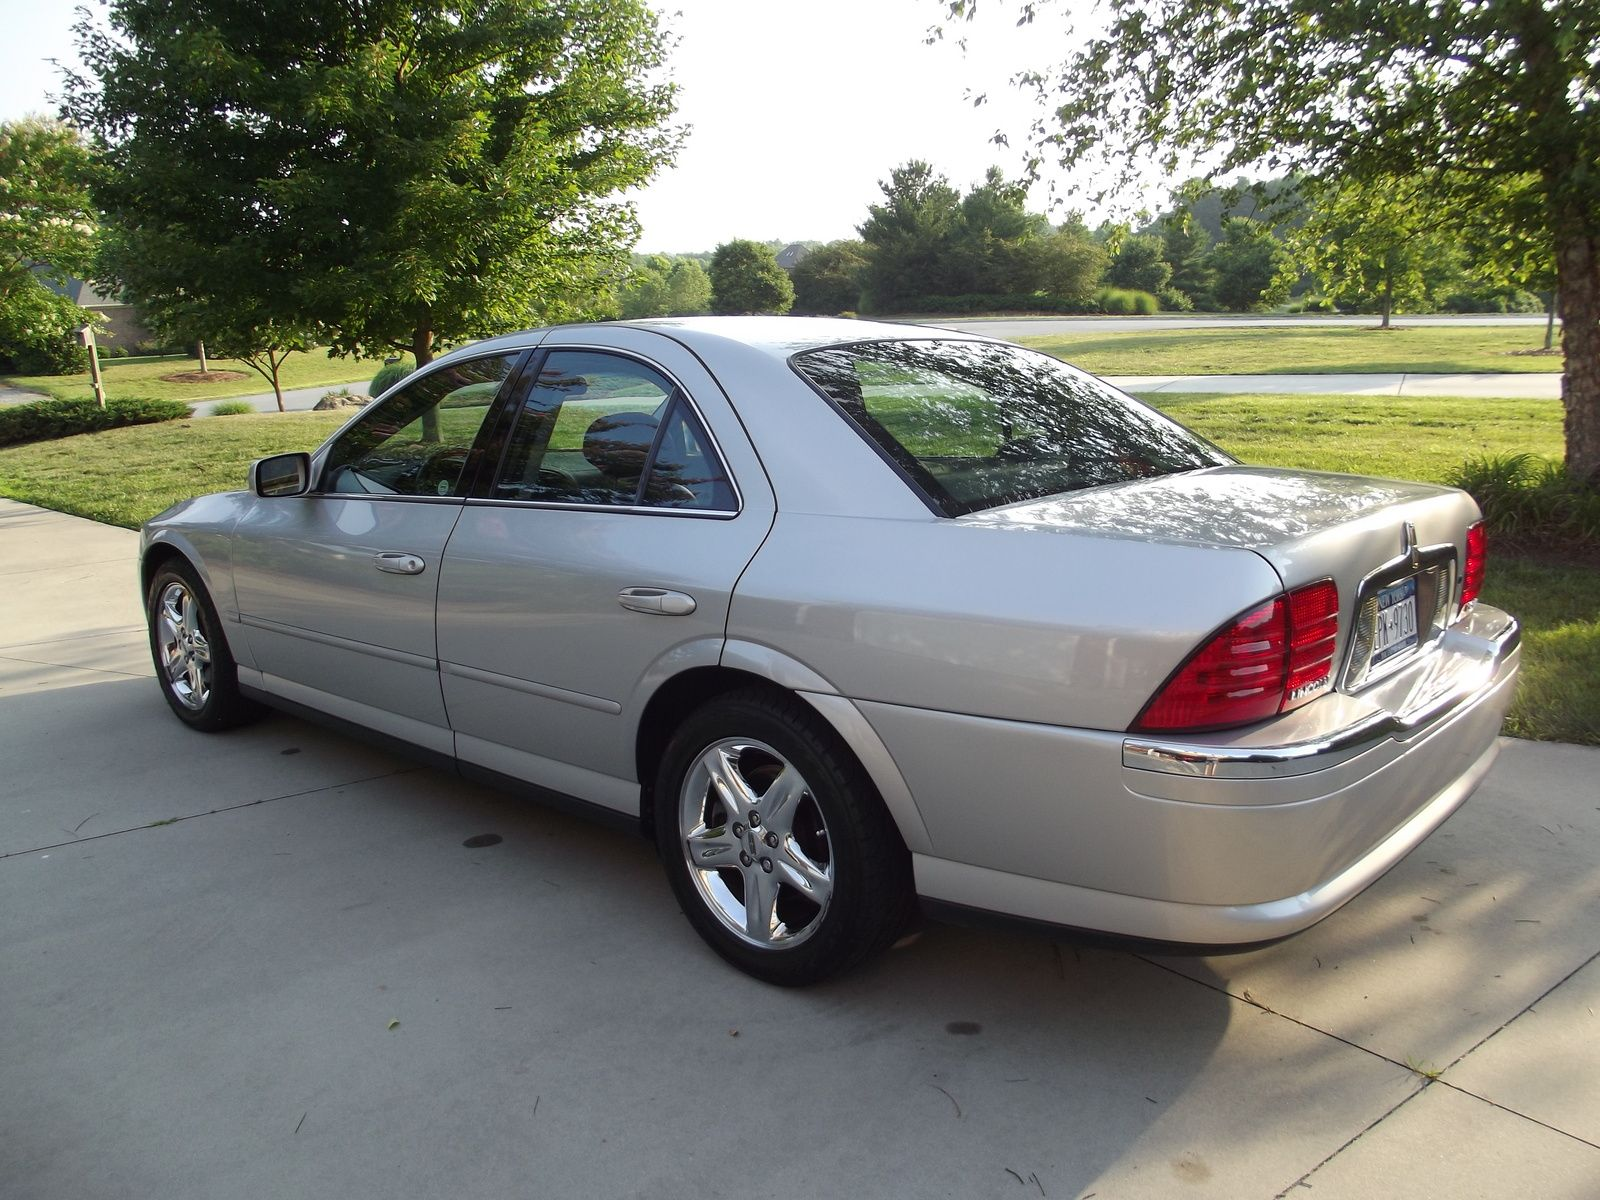 2002 Lincoln Ls Picture Of 2002 Lincoln Ls V8 Exterior Cars